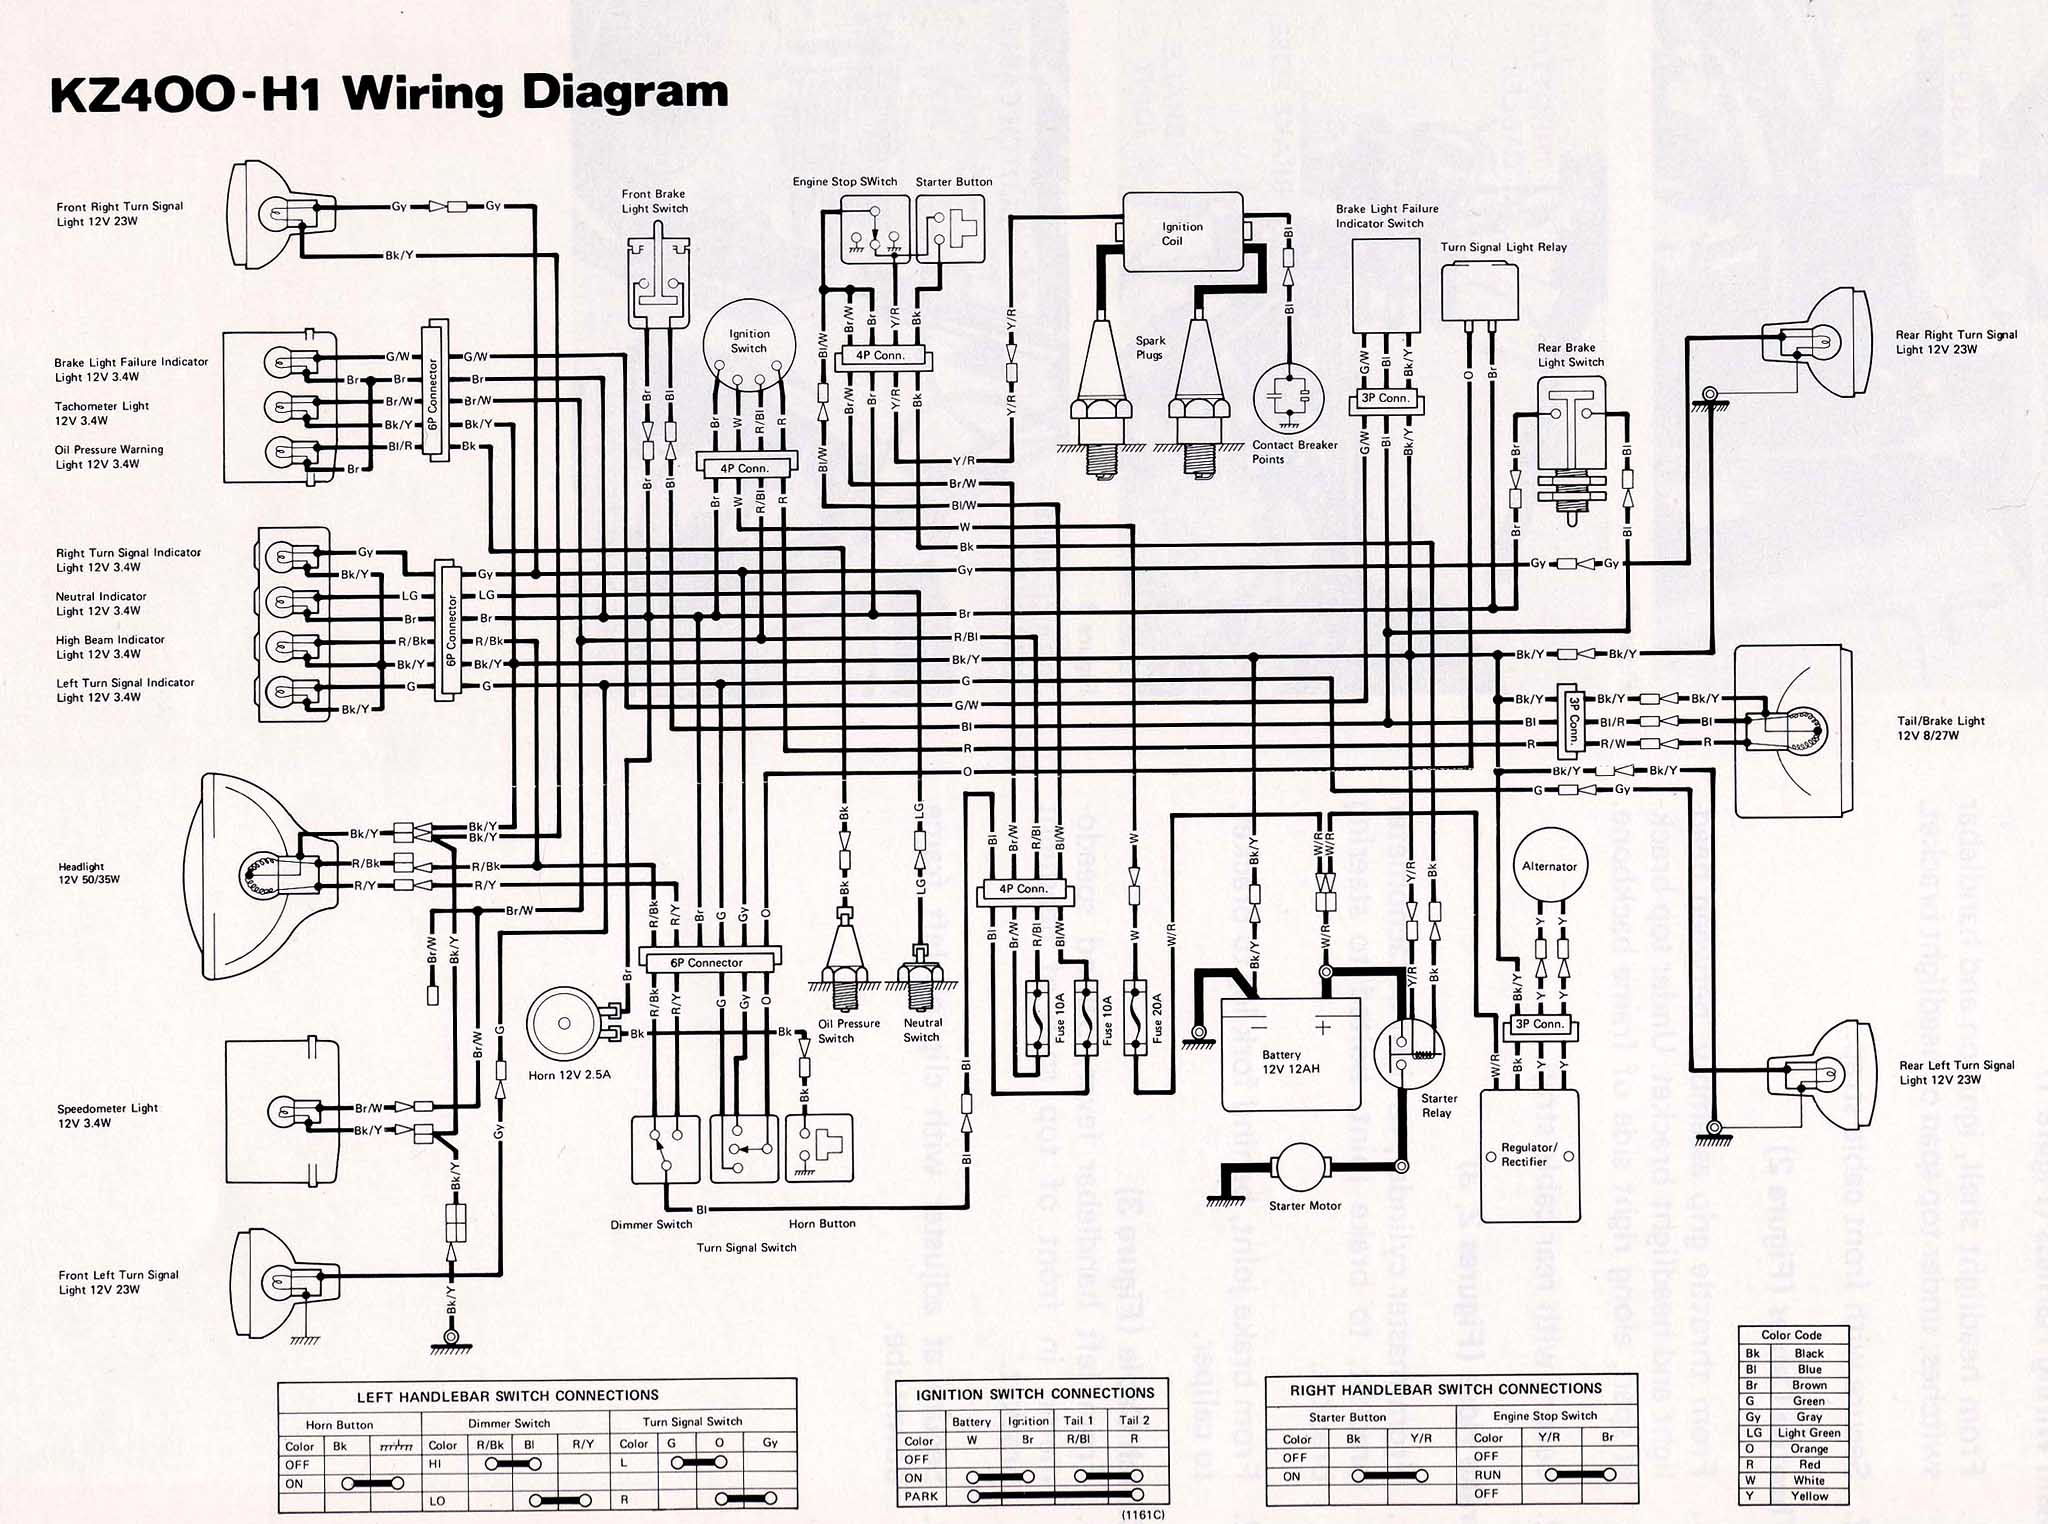 wire diagram 1979 kz400